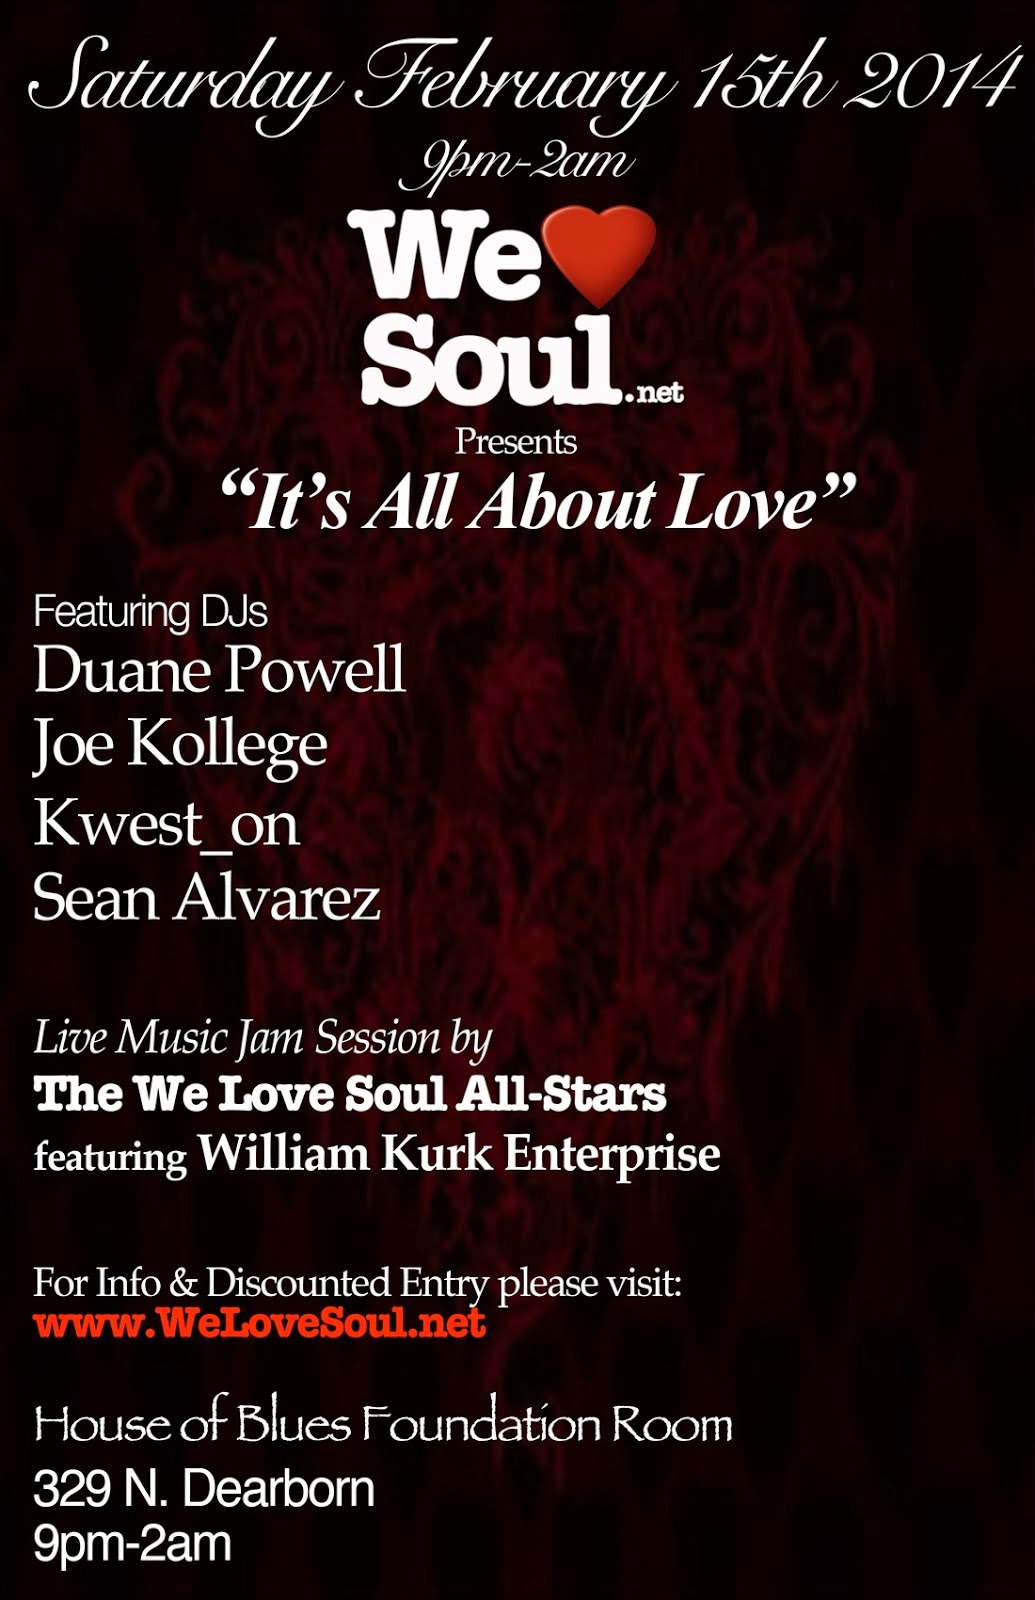 Sat Feb.15: We Love Soul presents It's All About Love